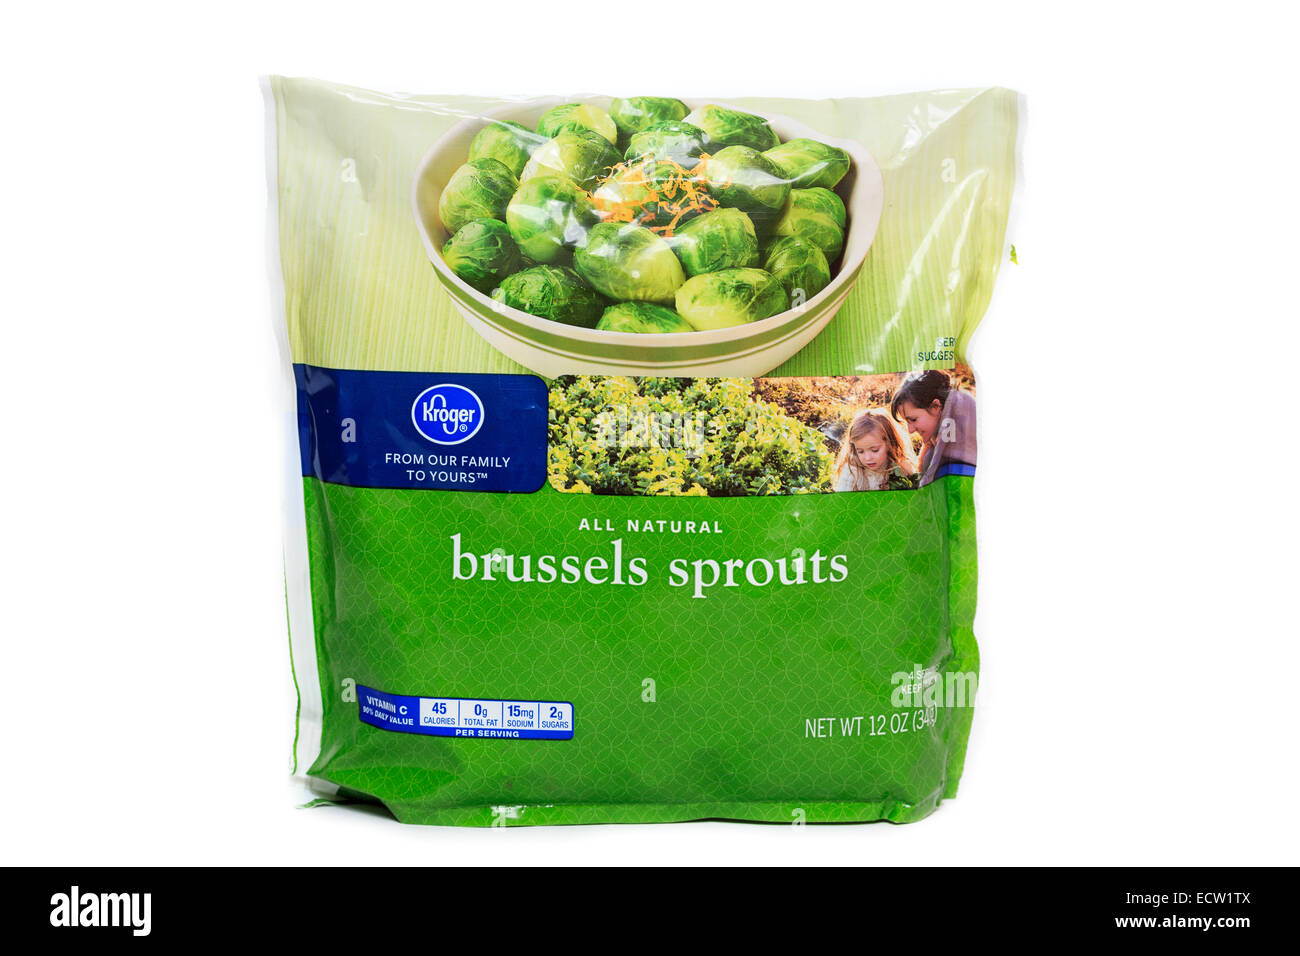 Kroger Brand Frozen Brussels Sprouts Stock Photo